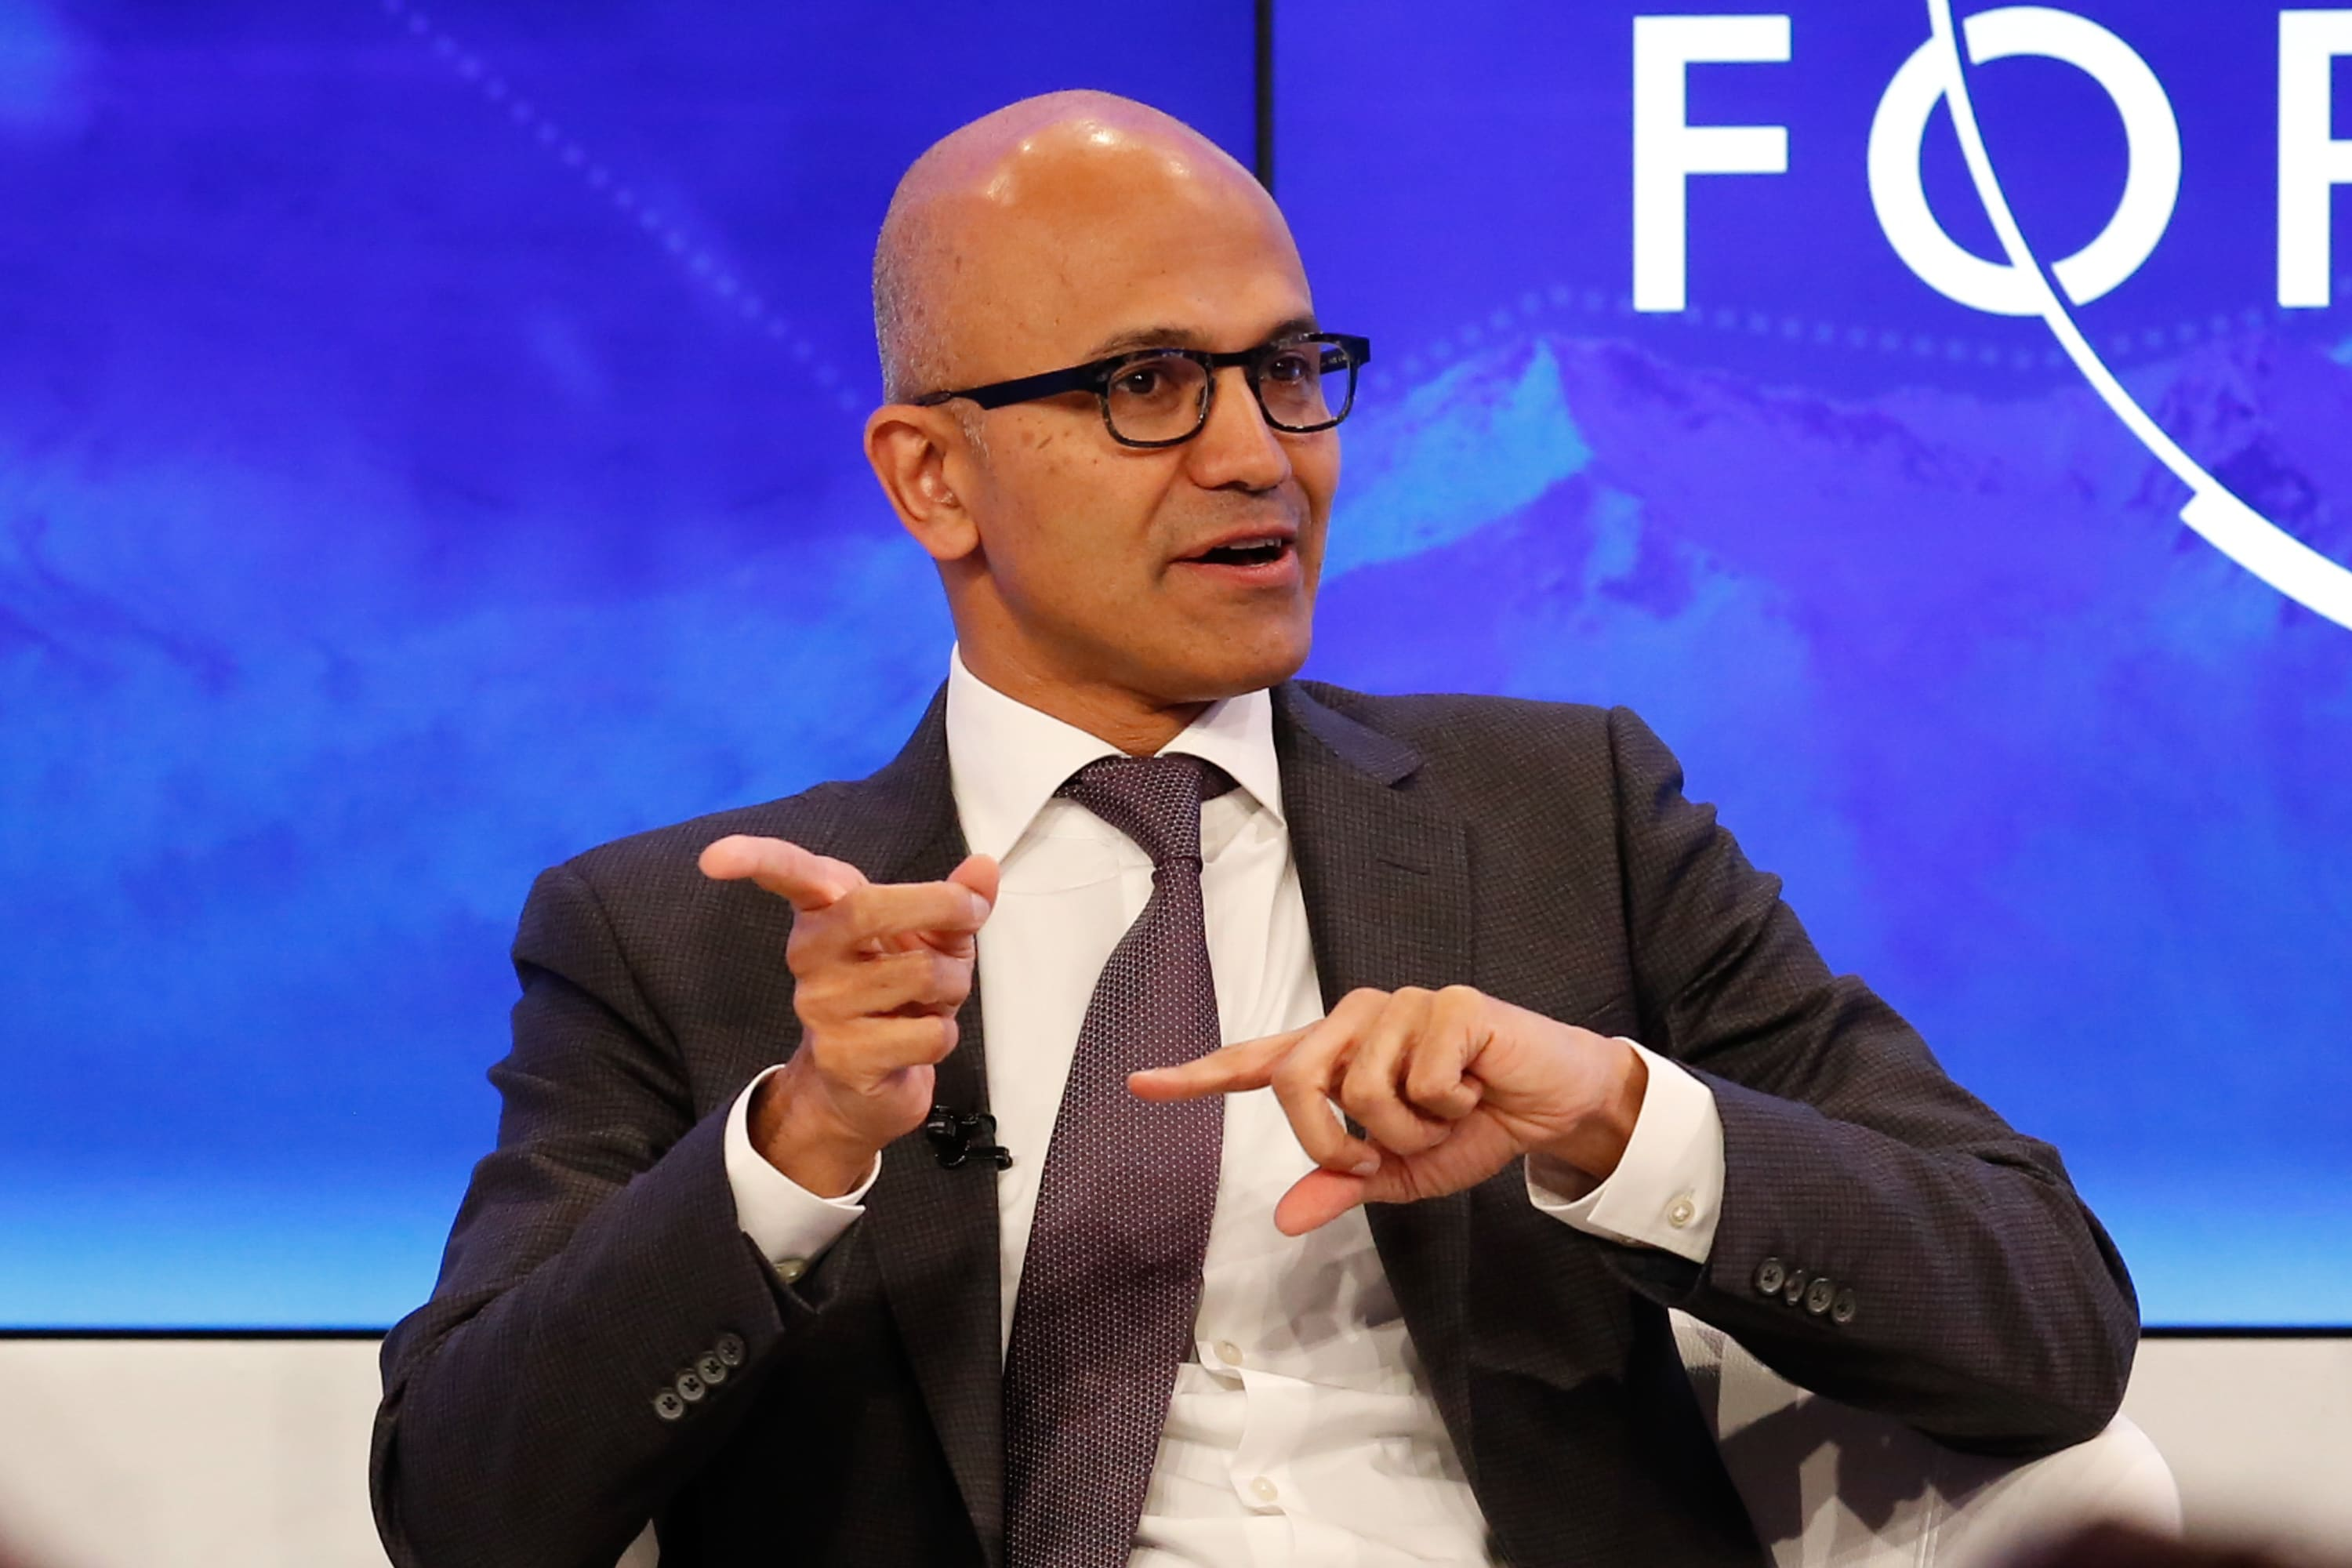 Microsoft is in talks to buy social app TikTok